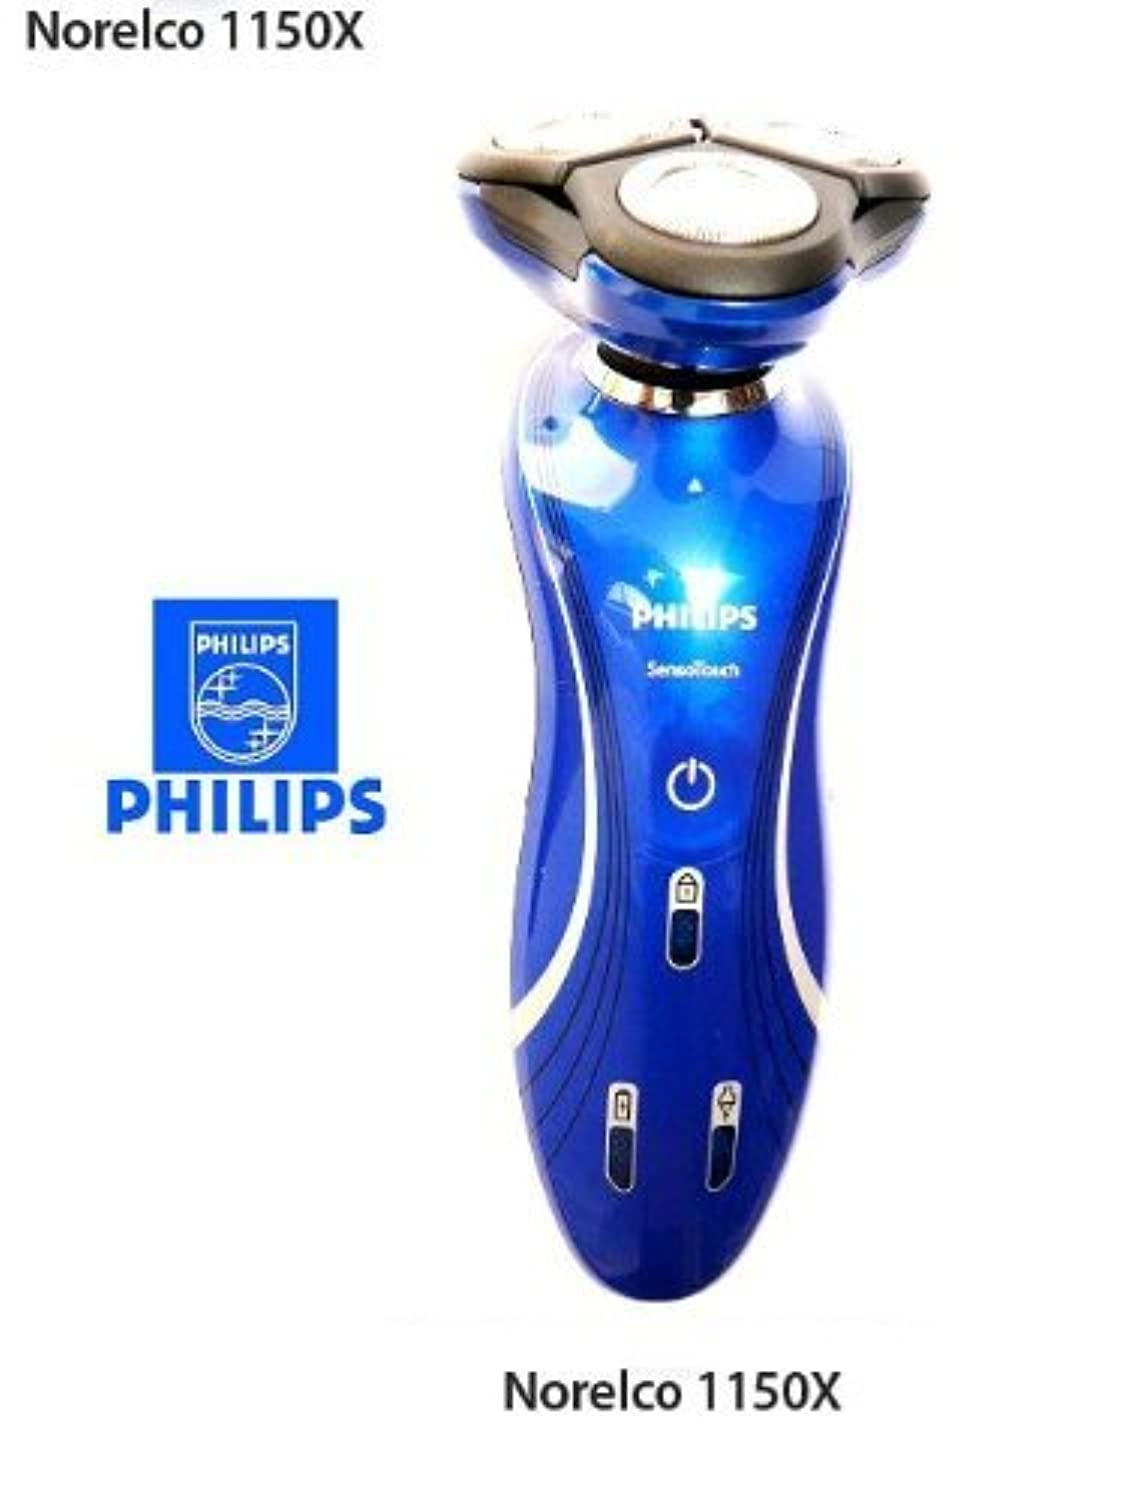 Philips Norelco 1150X / RQ1150 / 6100 SensoTouch 2d Electric Cordless Rechargable Mens Rotary Shaver Metallic...